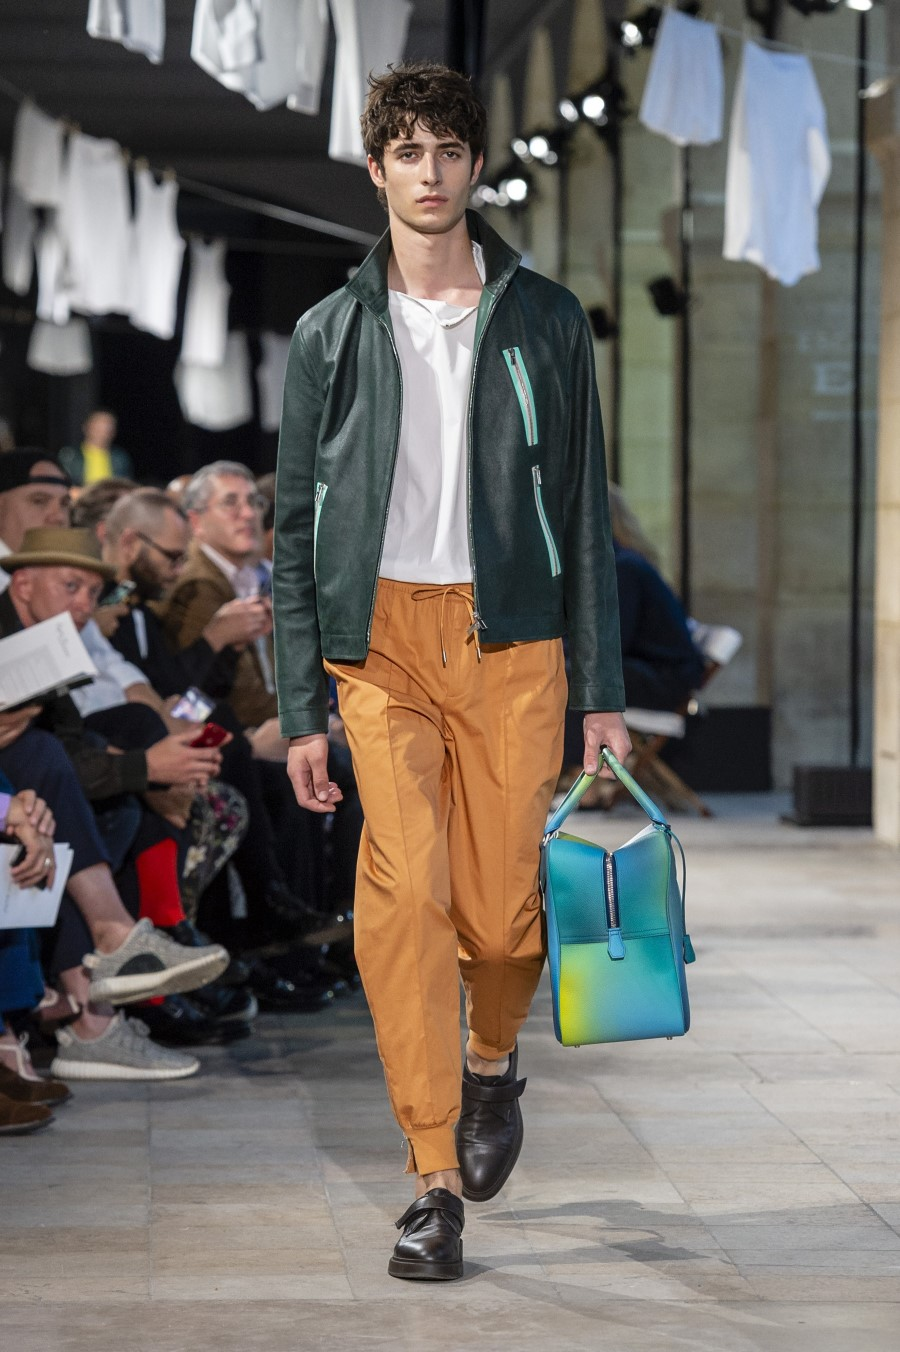 Hermès Men's Spring Summer 2019 - Paris Fashion Week